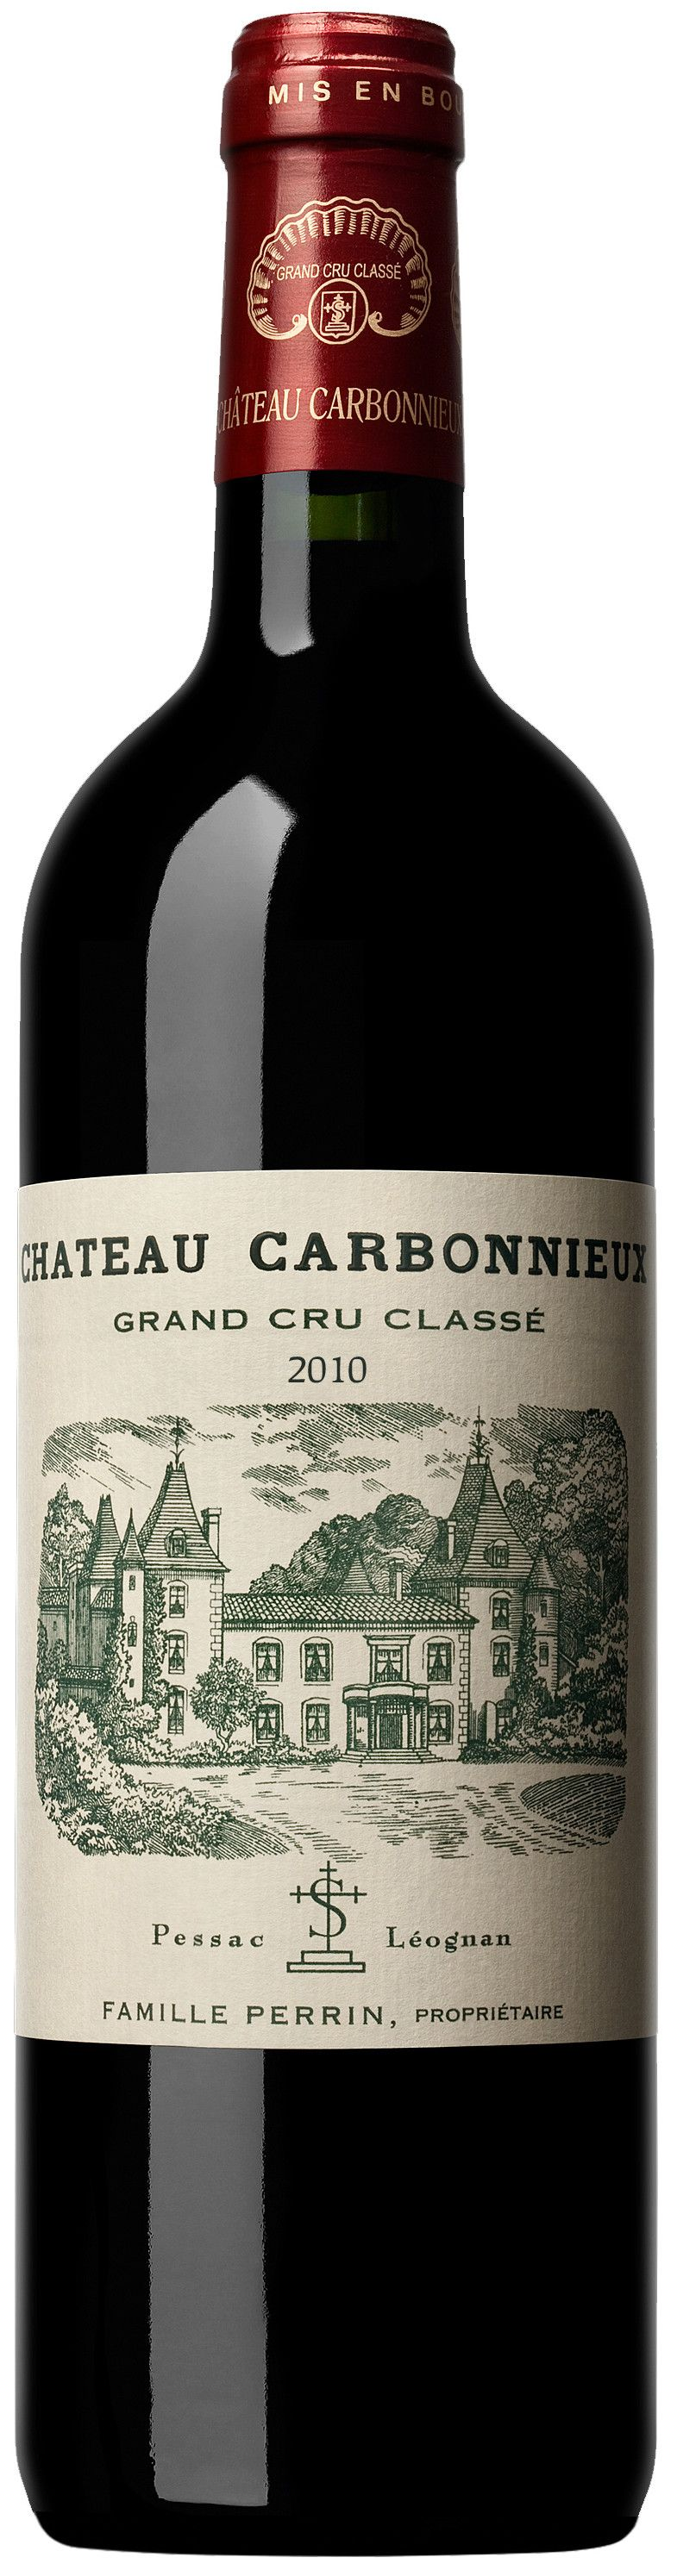 Chateau Carbonnieux, Grand Cru Classe Rouge, 2010